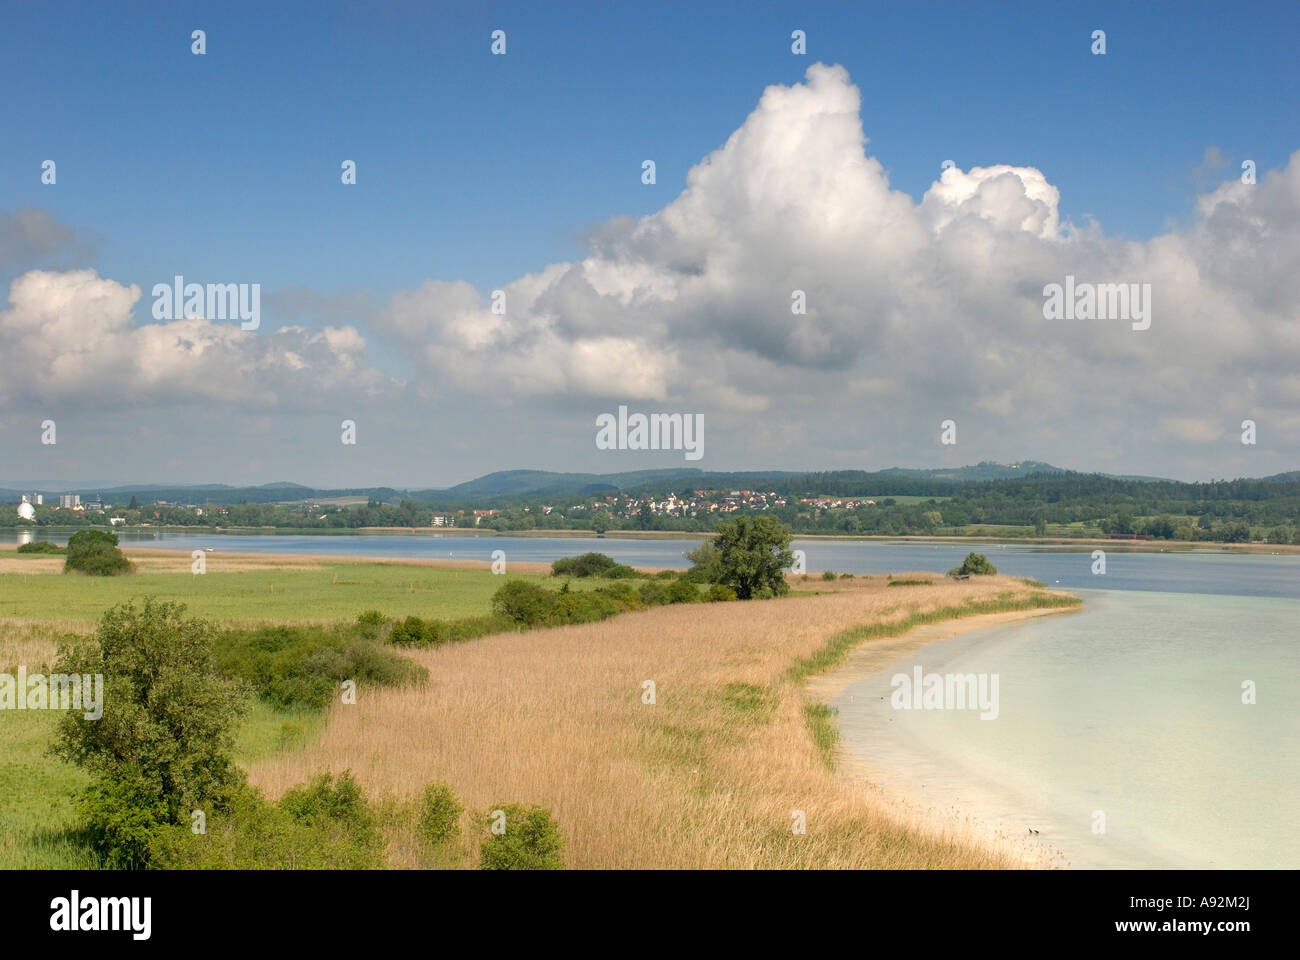 A View on the peninsula of Mettnau - Lake Constance, Baden-Wuerttemberg, Germany, Europe. - Stock Image